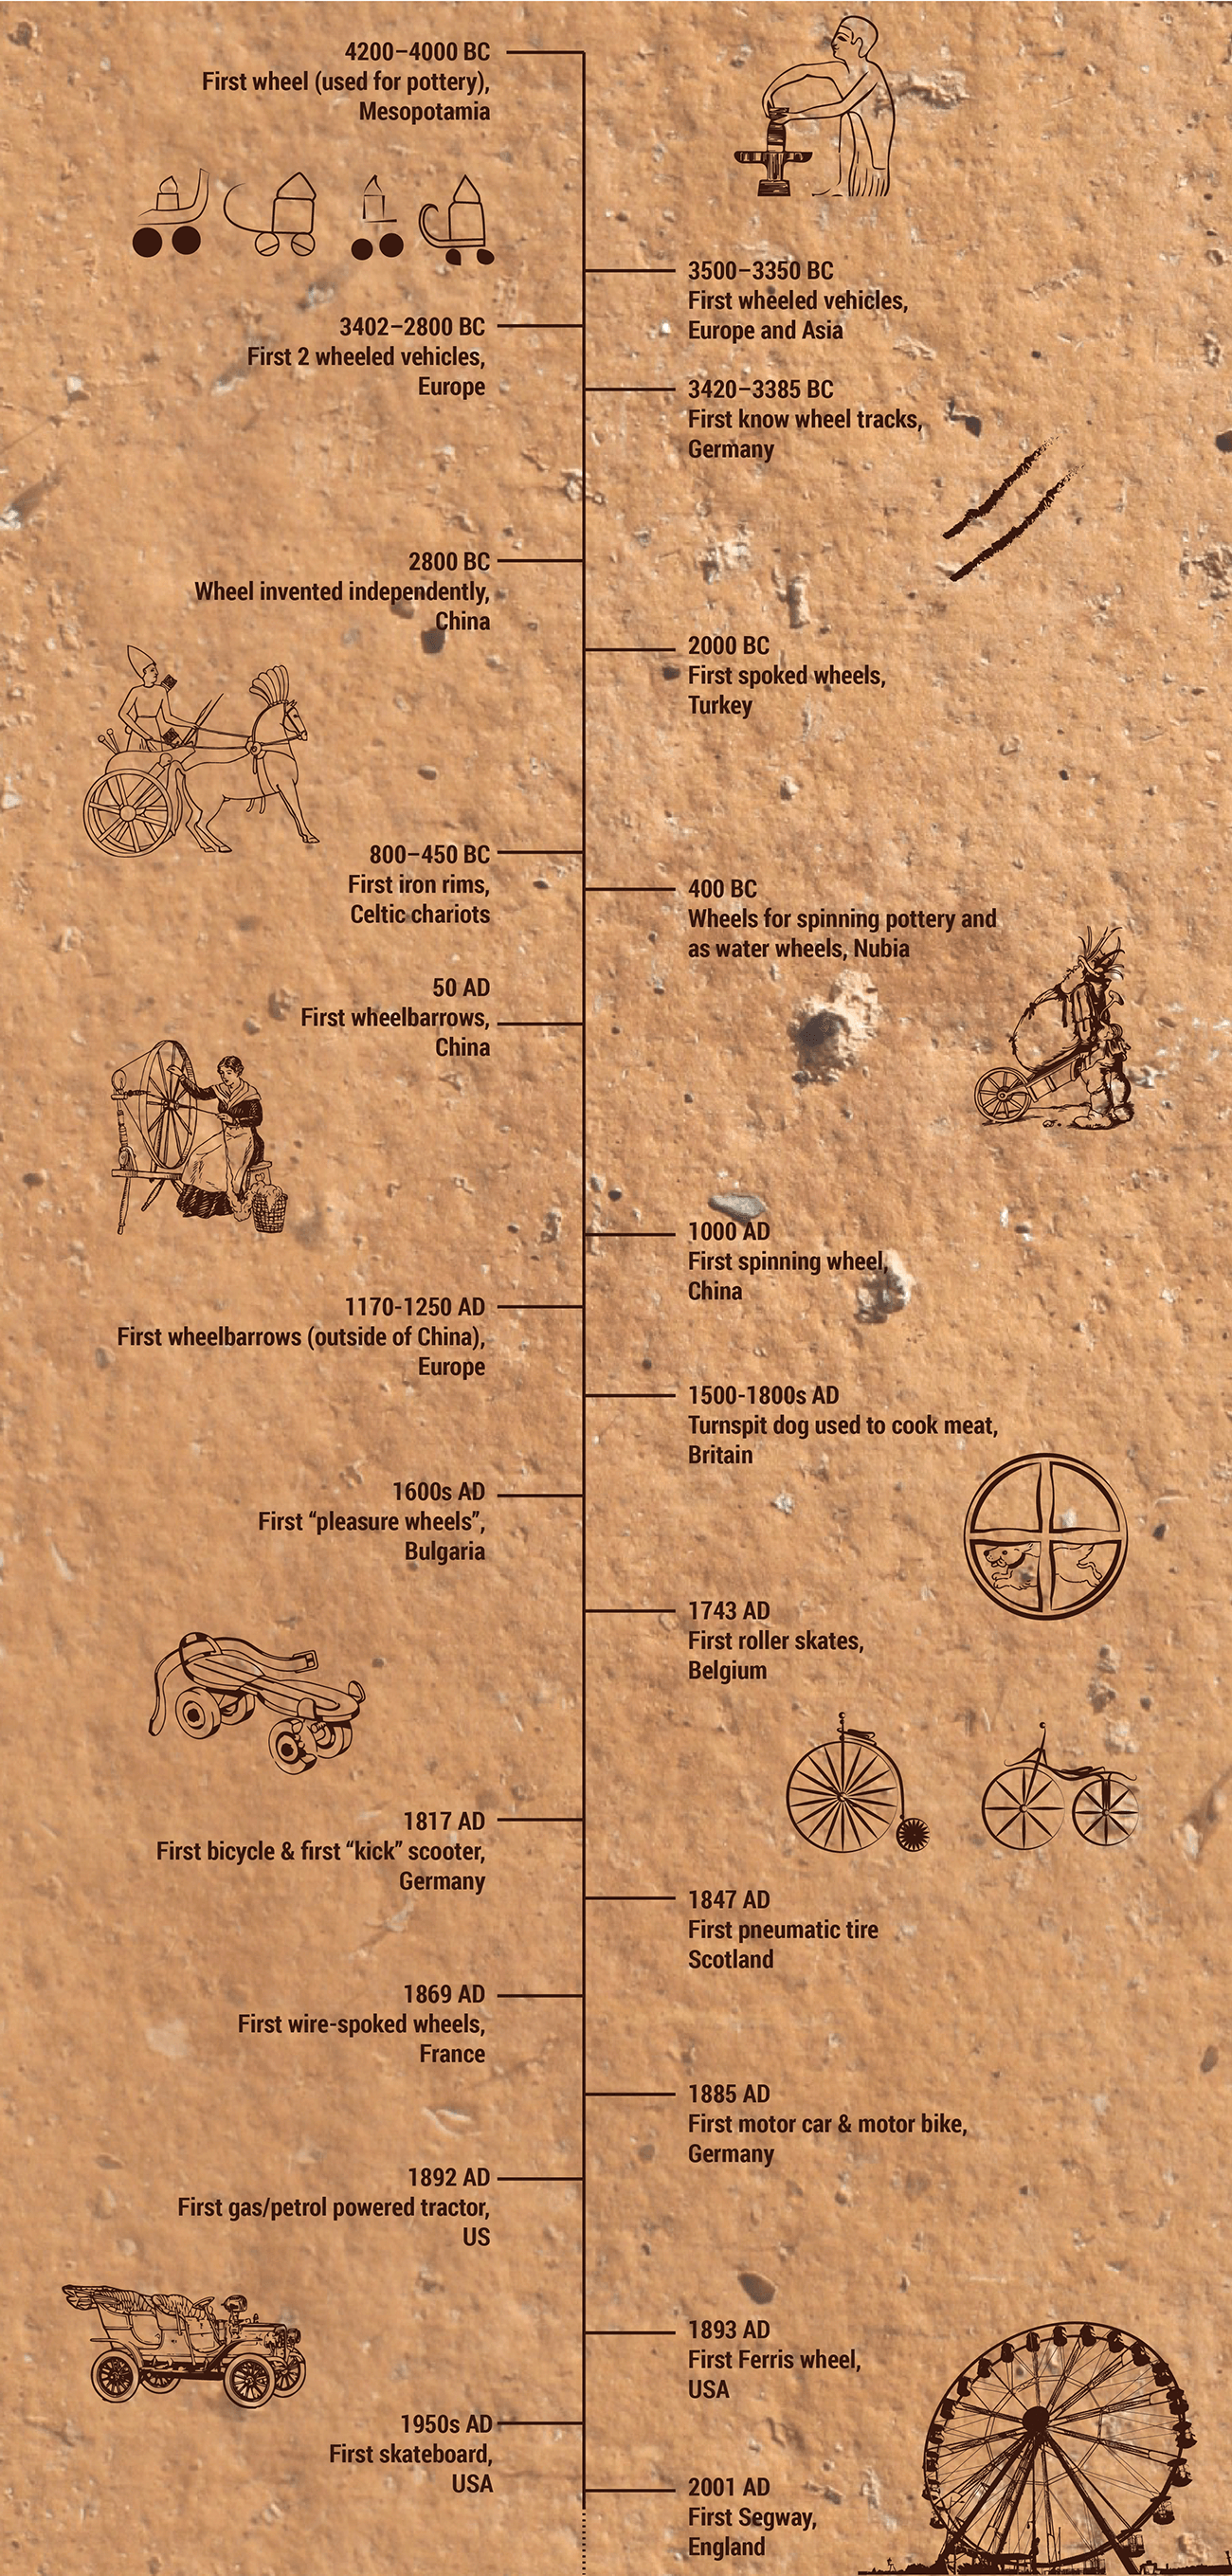 Time line showing the hsitory of the wheel and who invented it